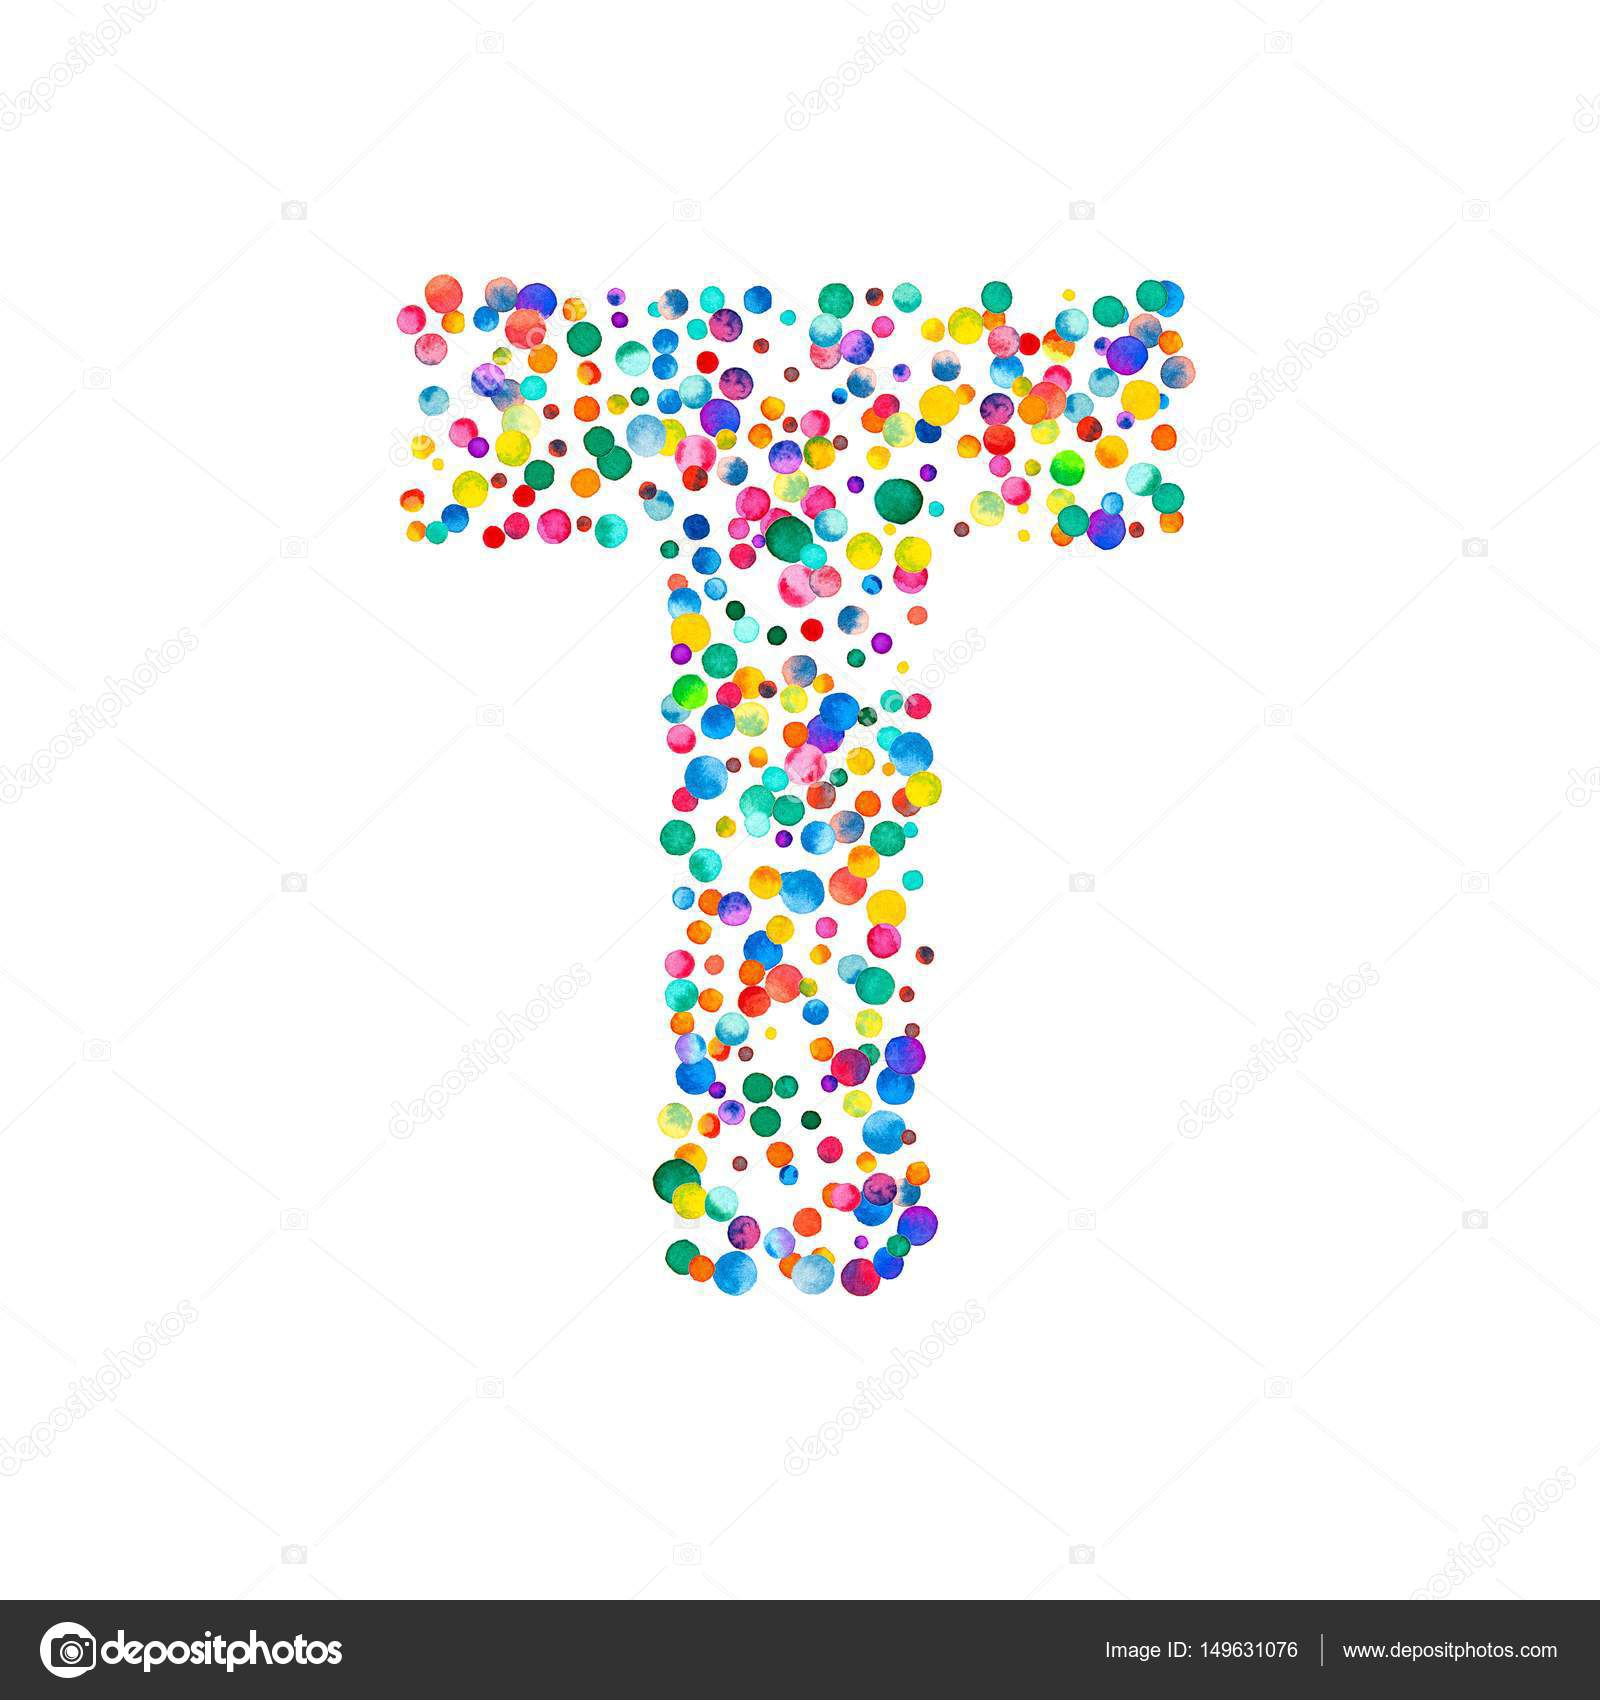 Letter T Filled With Dense Watercolor Confetti On White